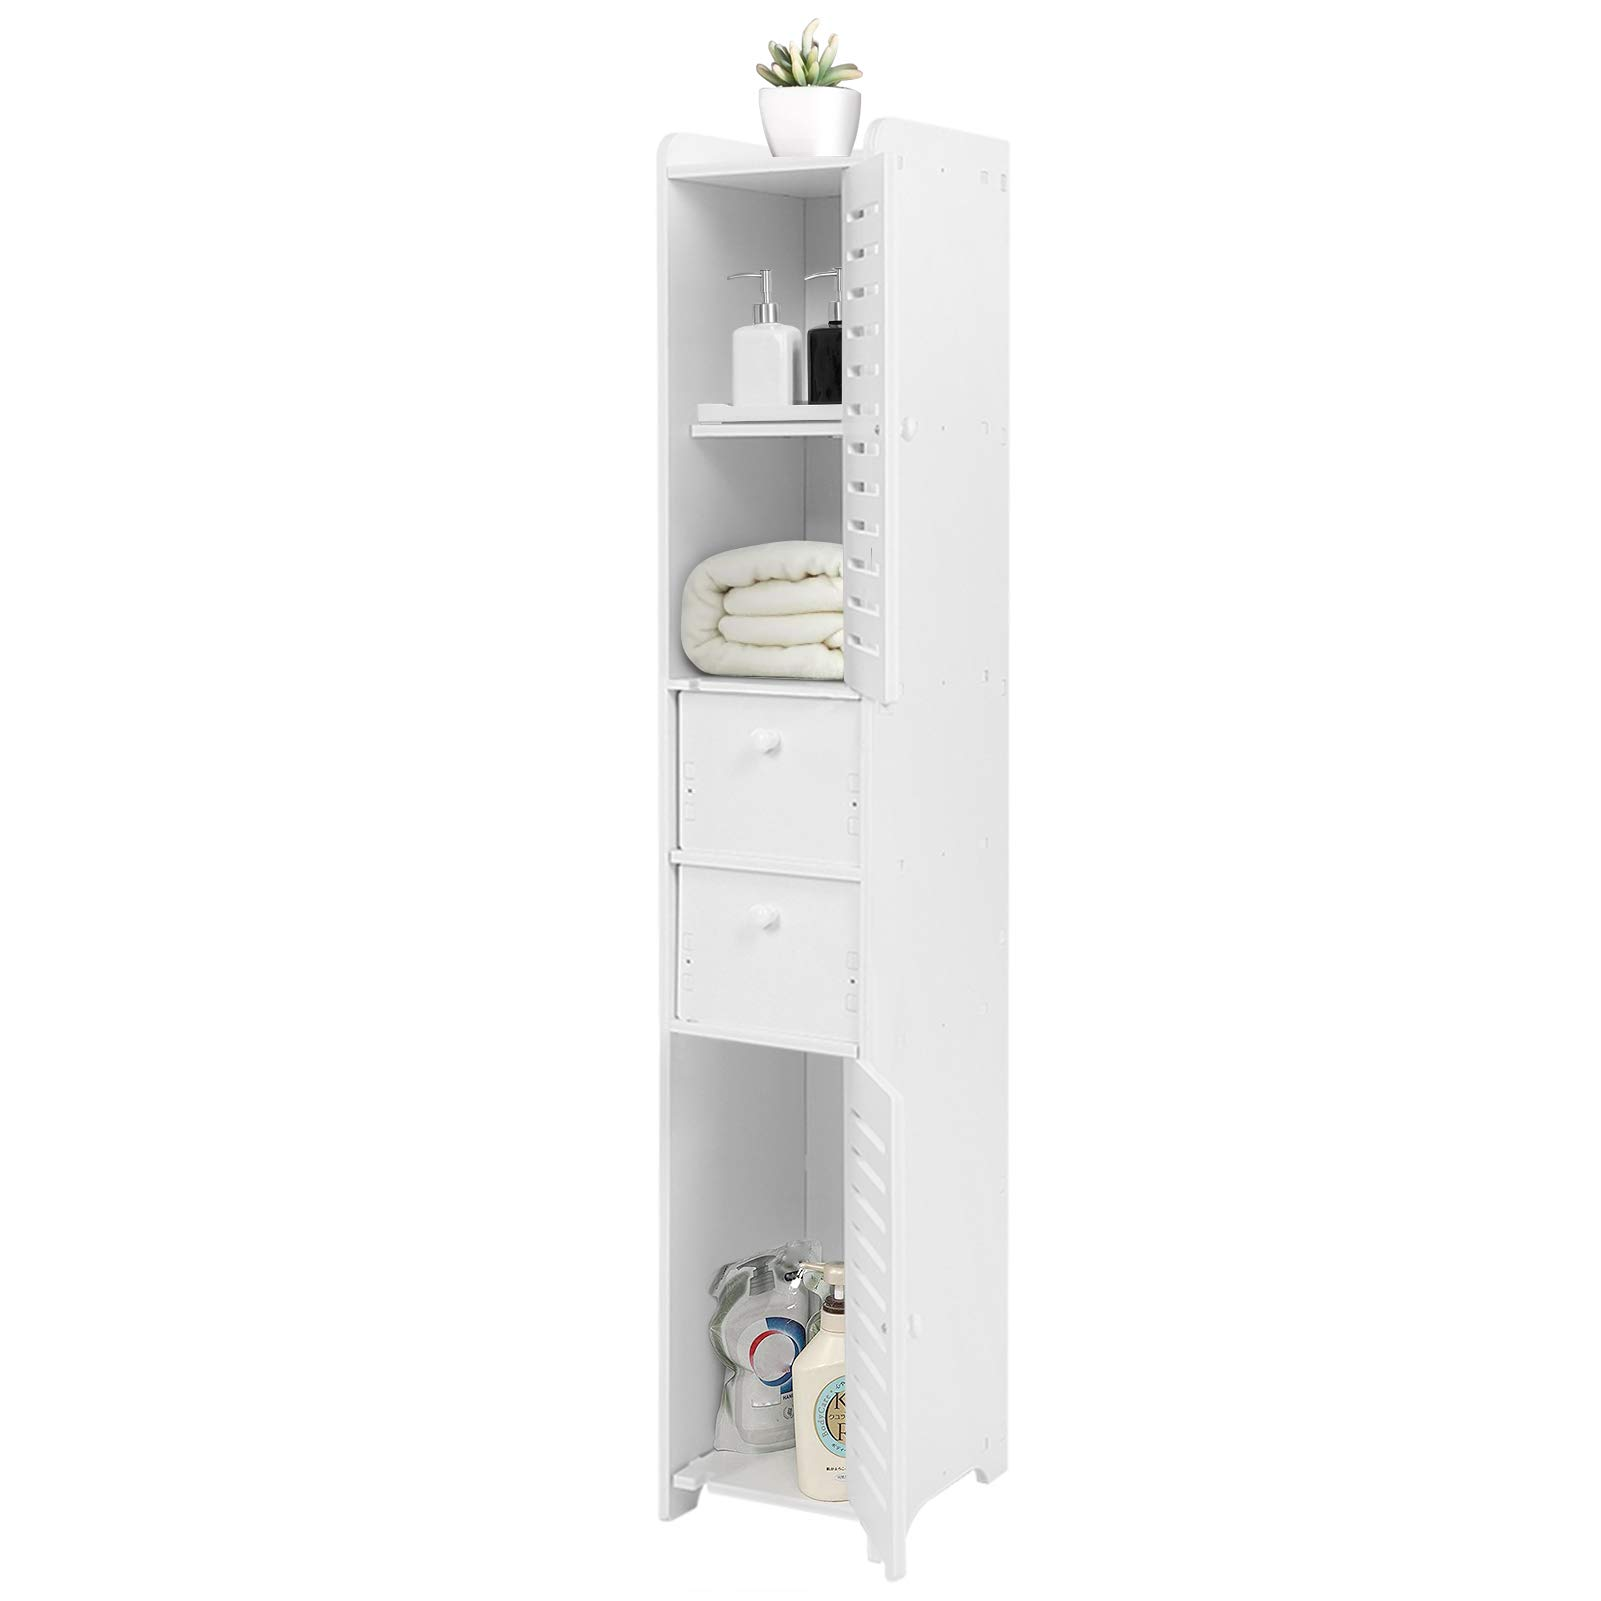 Tall Bathroom Cabinet Bathroom Tallboy Narrow Bathroom Storage Wood Plastic Board Corner Cabinet Bathroom Storage Shelf Rack Organiser Tallboy Unit With 2 Doors 2 Drawers Buy Online In Liechtenstein At Liechtenstein Desertcart Com Productid